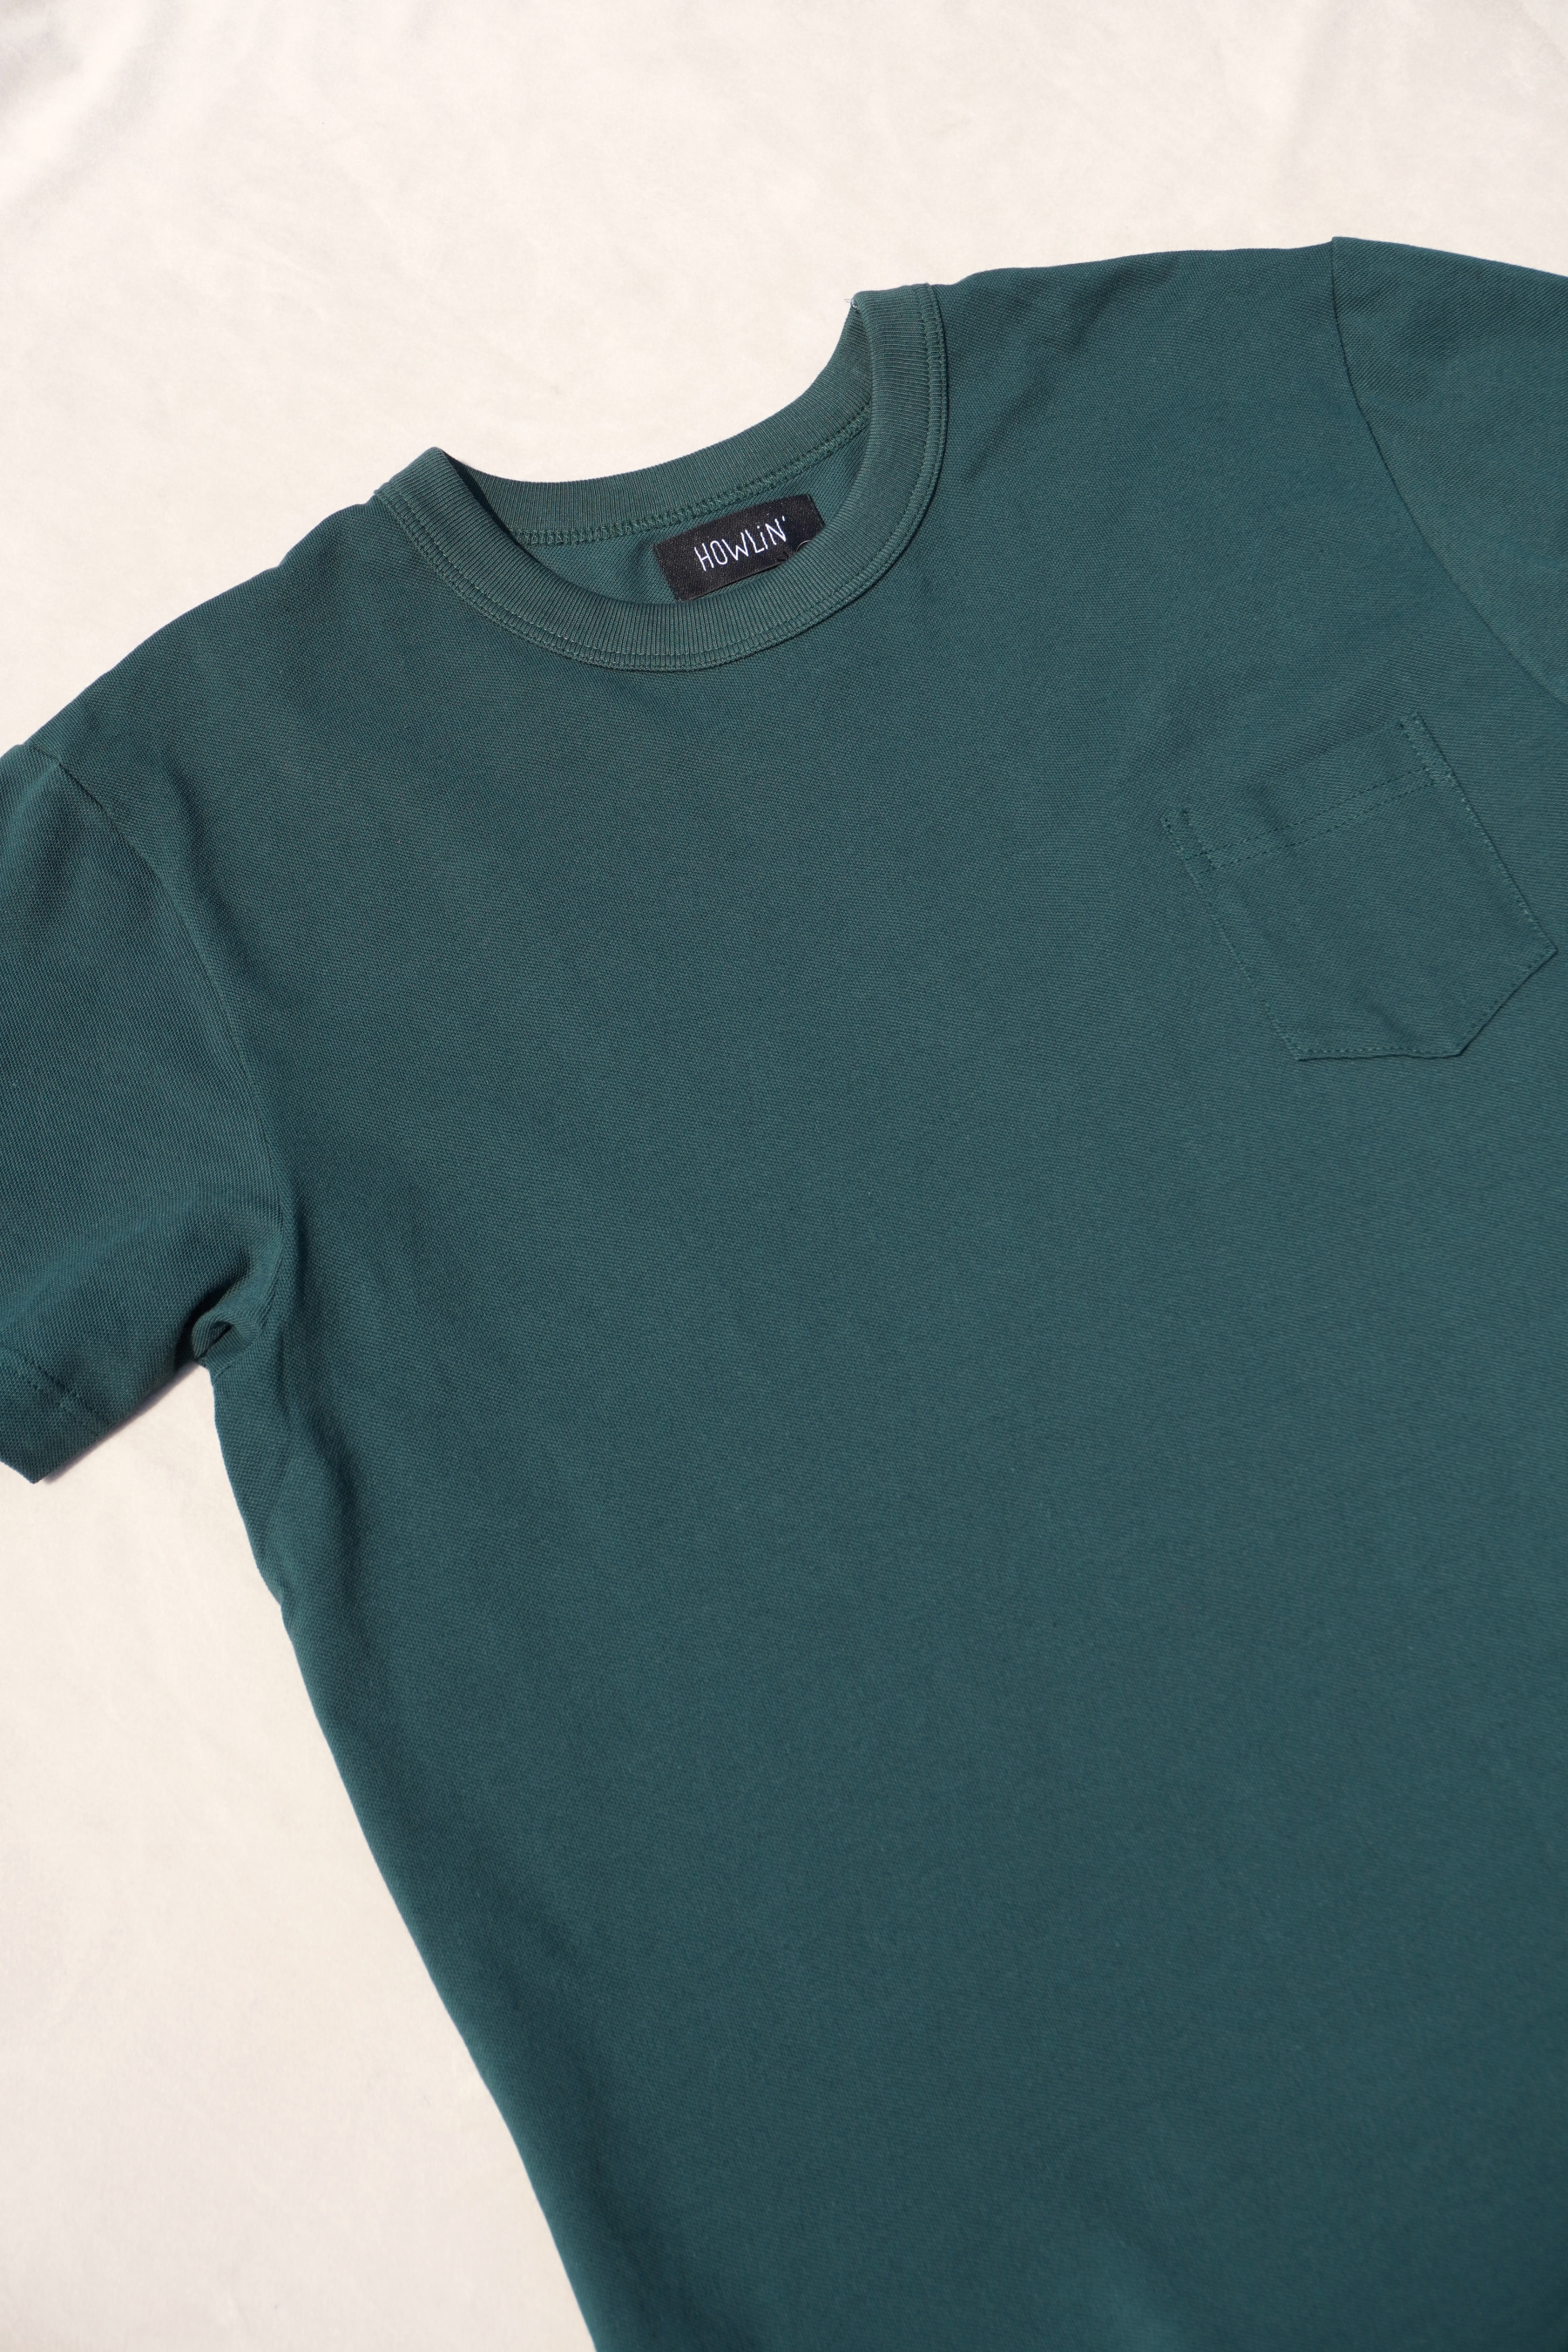 [HOWLIN'] Don't Stop The Tshirt - Petrol Green